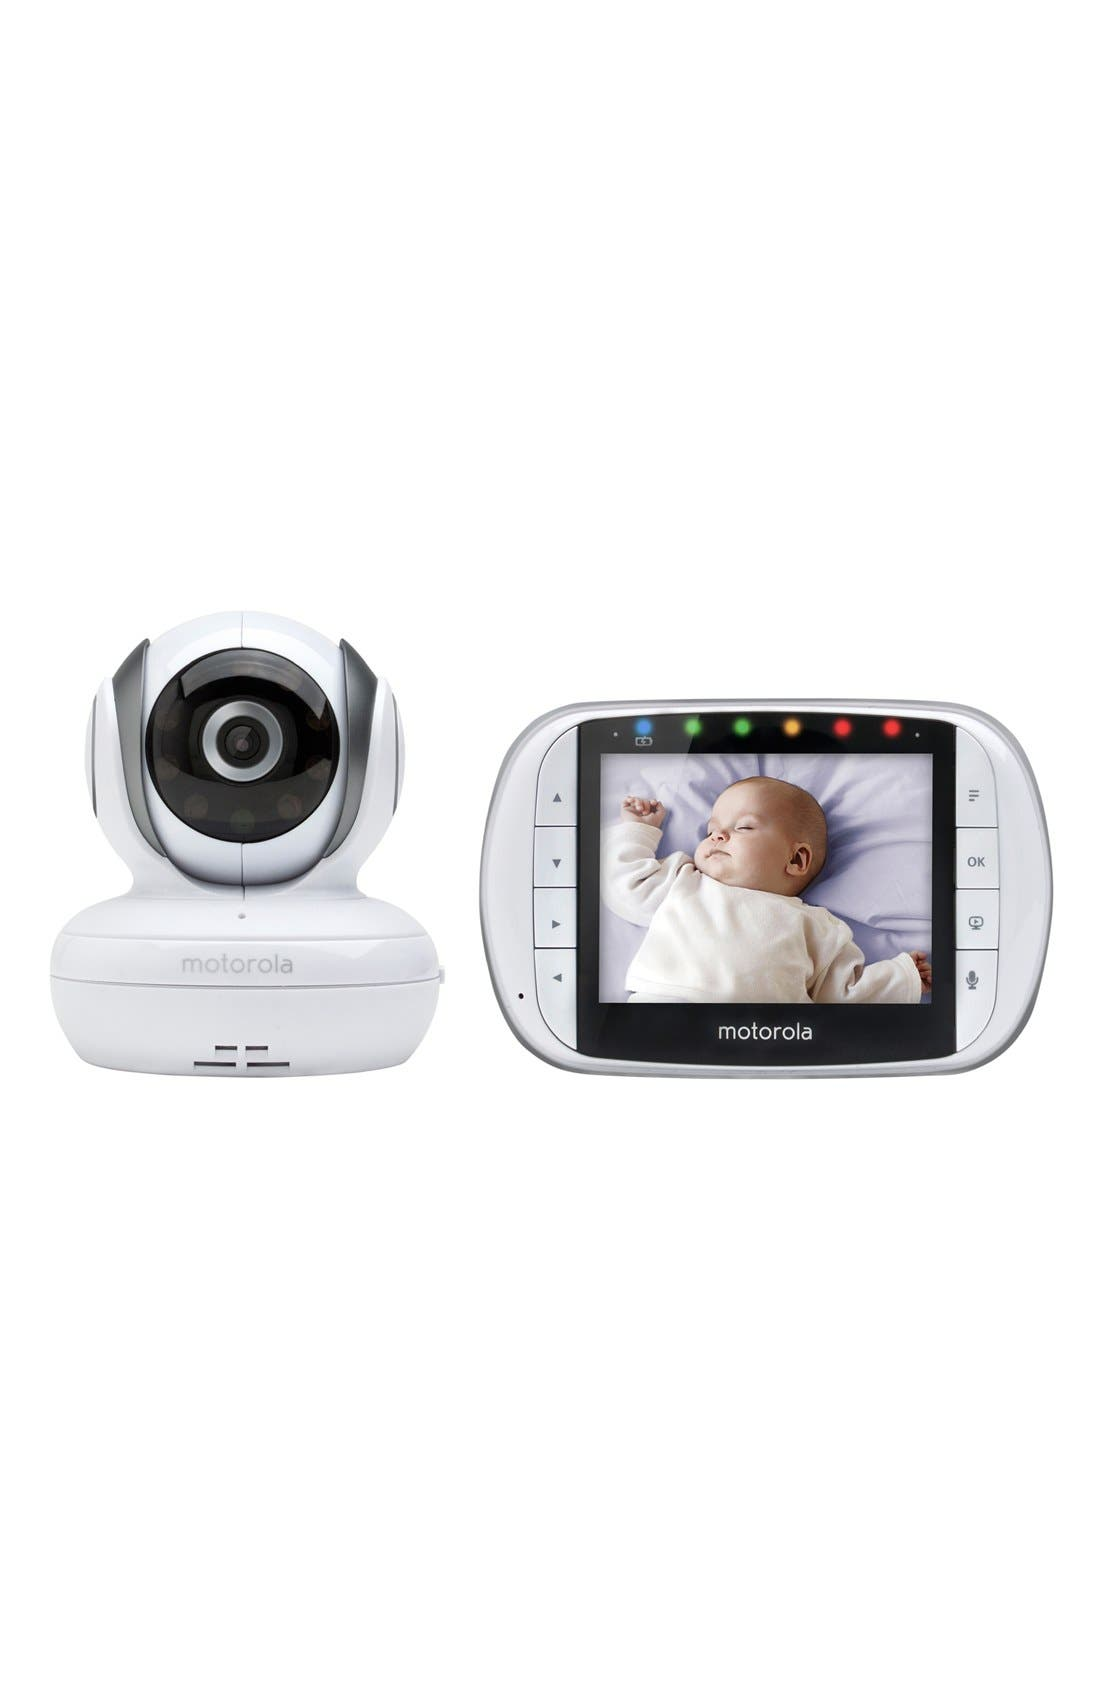 MBP36S Wireless Digital Infrared Video Baby Monitor,                         Main,                         color, White/ Grey Trim